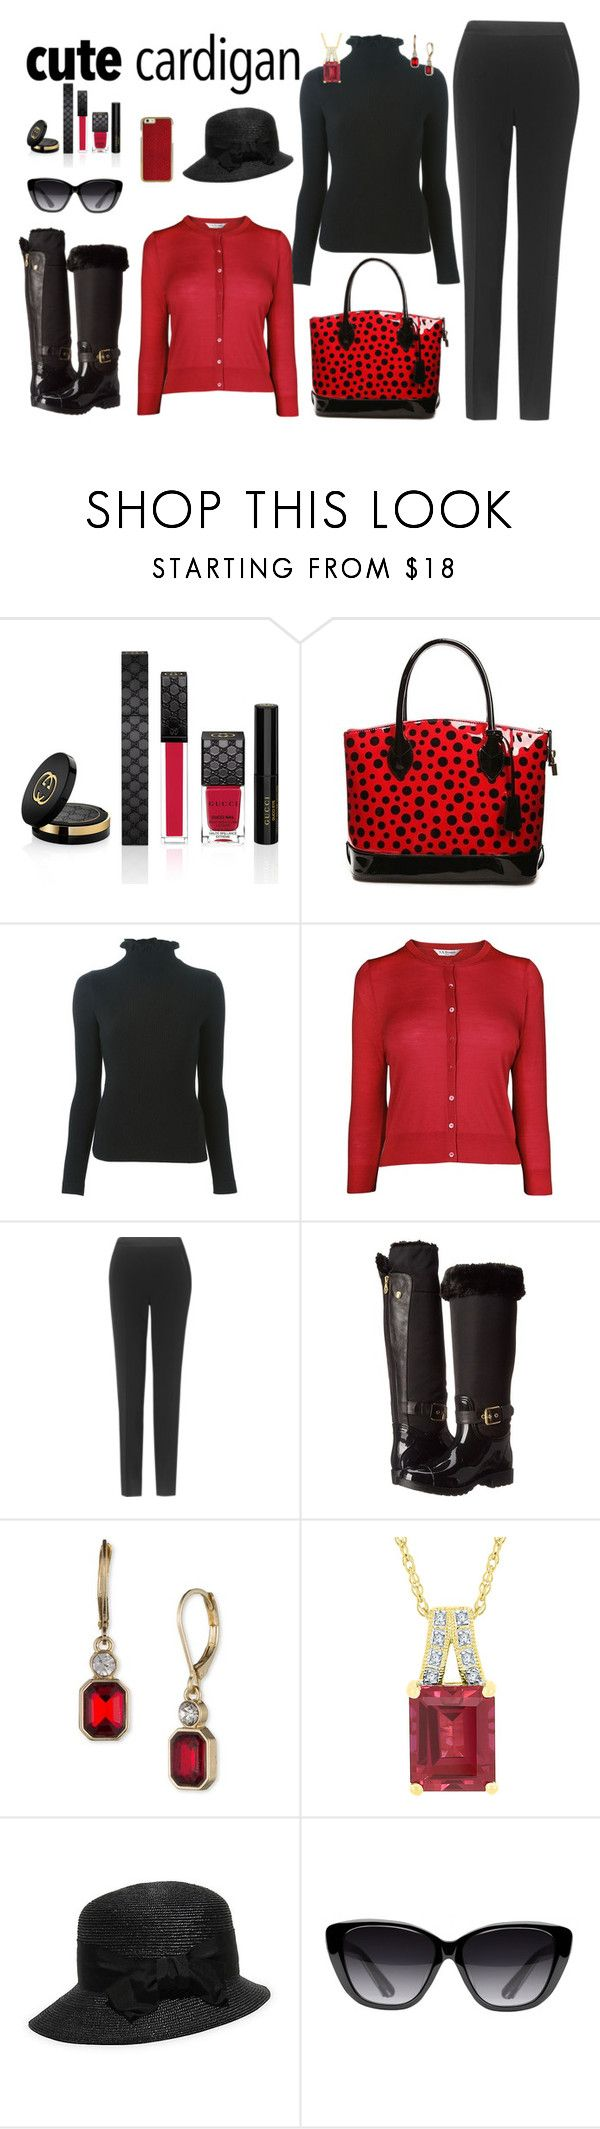 """Favorite Cardigan"" by ann-kelley14 ❤ liked on Polyvore featuring Gucci, Emporio Armani, L.K.Bennett, GUESS, Anne Klein, Gottex, Elizabeth and James, SKDesigns, AnnsRazzJazz and annkelley14"